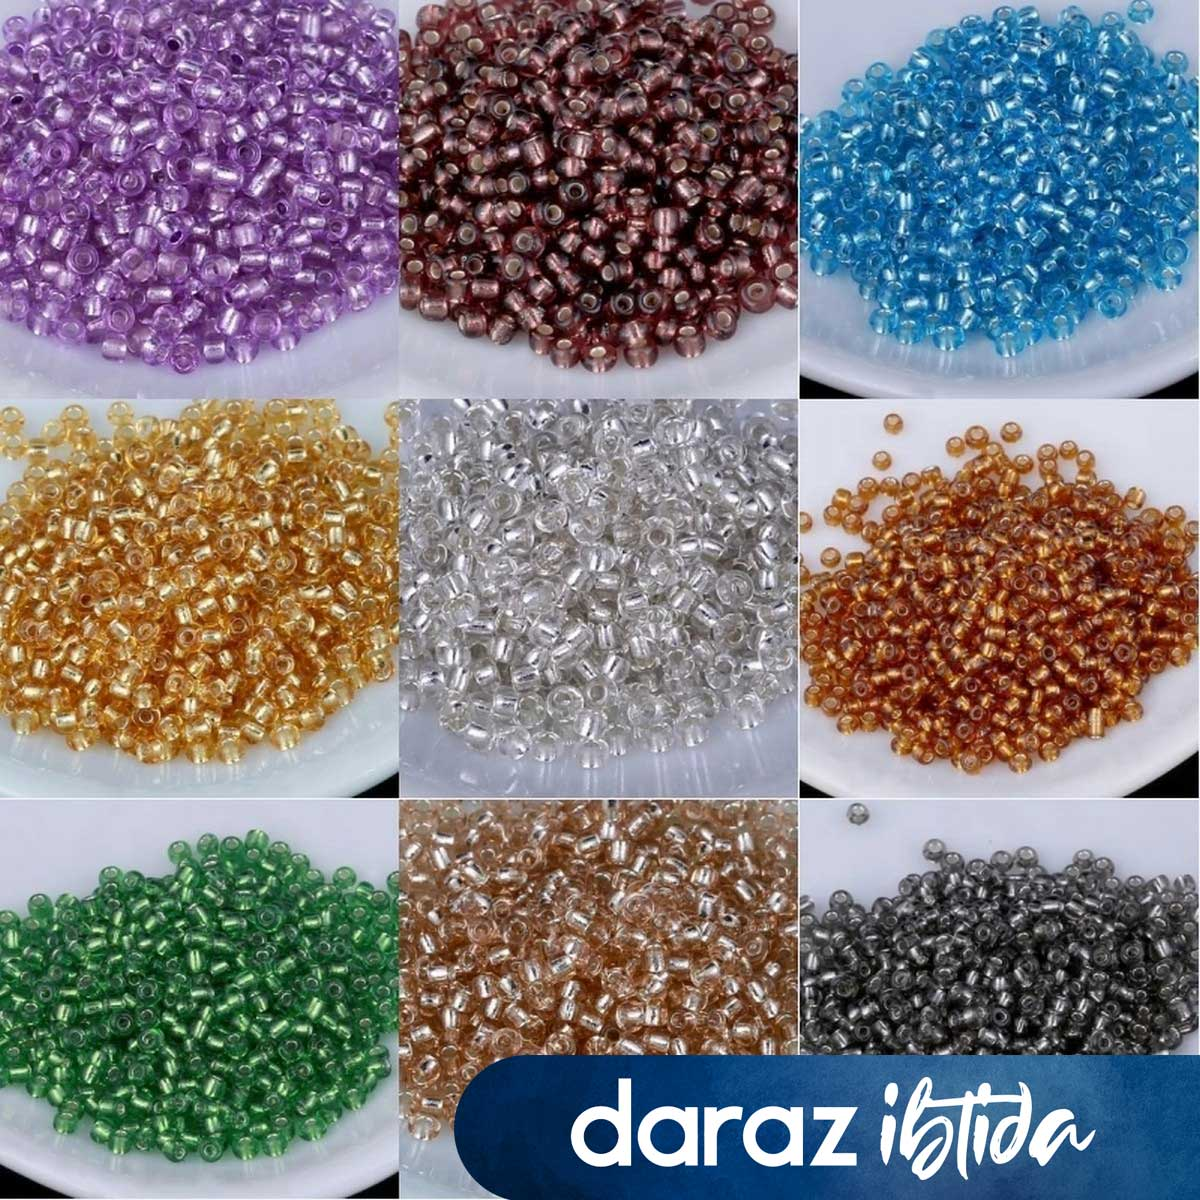 0.5 / 12 colour 1200Pcs 11/0 Beads 1.3x1.6mm Dyed Color Spacer Glass Seed beads For DIY Jewelry Making Accessory